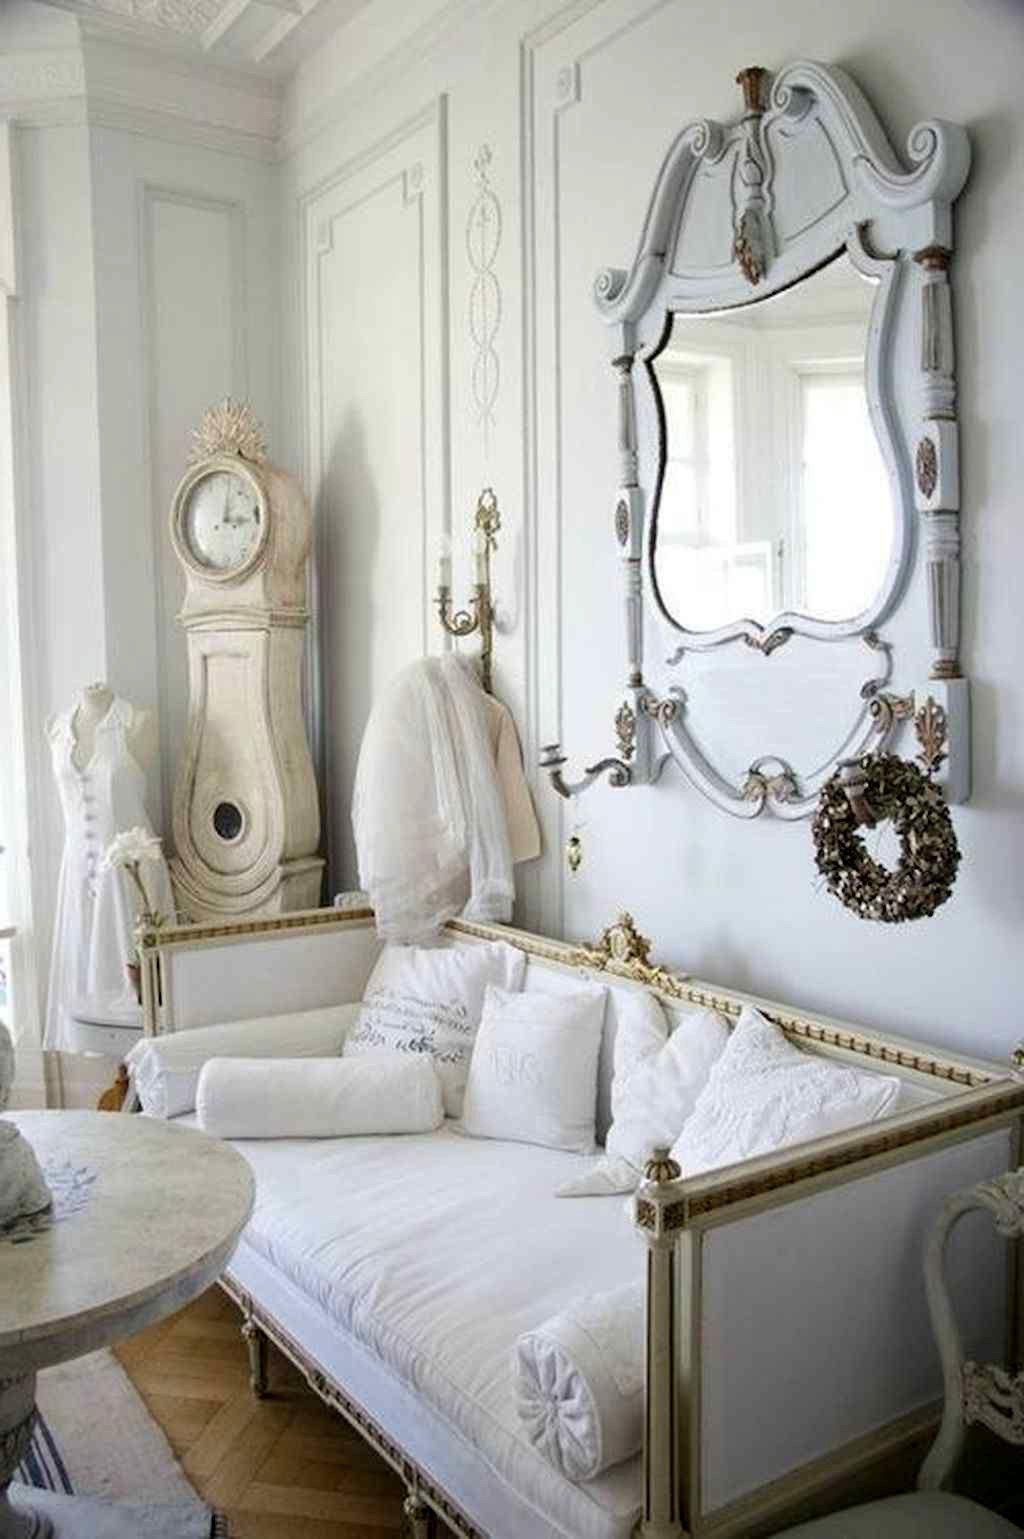 82 Fresh Shabby Chic Living Room Decor Ideas On A Budget 002 For Your Homes Best Inspiration Ideas That You Want In 2020 Chic Living Room Decor Chic Living Room Shabby Chic Dining Room #shabby #chic #living #room #ideas #on #a #budget